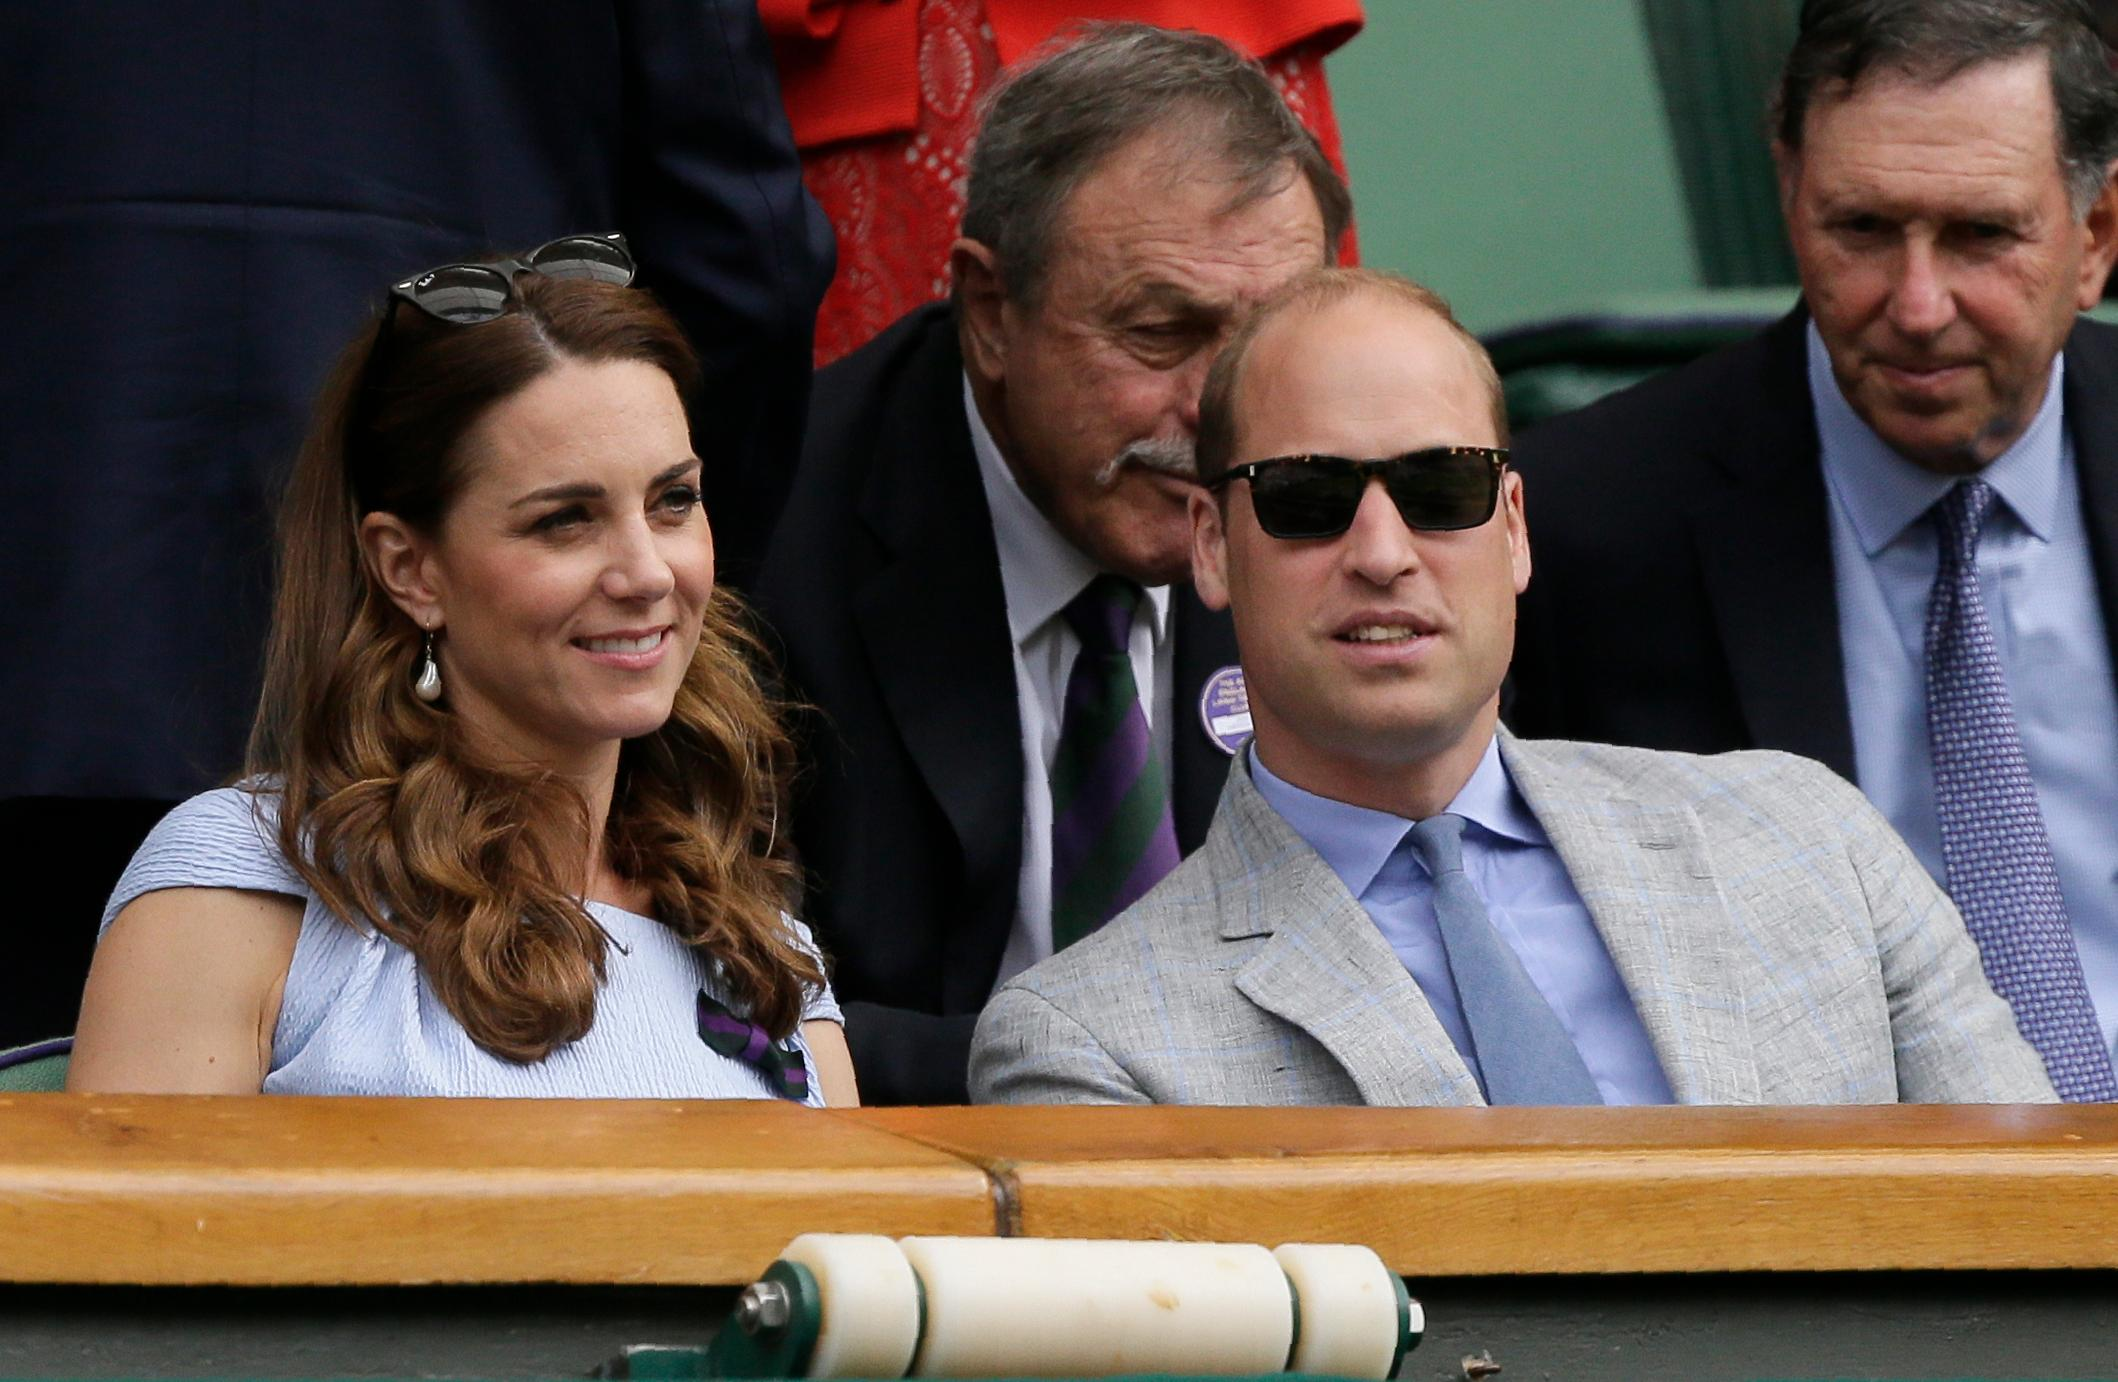 Britain's Kate, The Duchess of Cambridge and Prince William watch Serbia's Novak Djokovic play Switzerland's Roger Federer during the men's singles final match of the Wimbledon Tennis Championships in London, Sunday, July 14, 2019. (AP Photo/Tim Ireland)